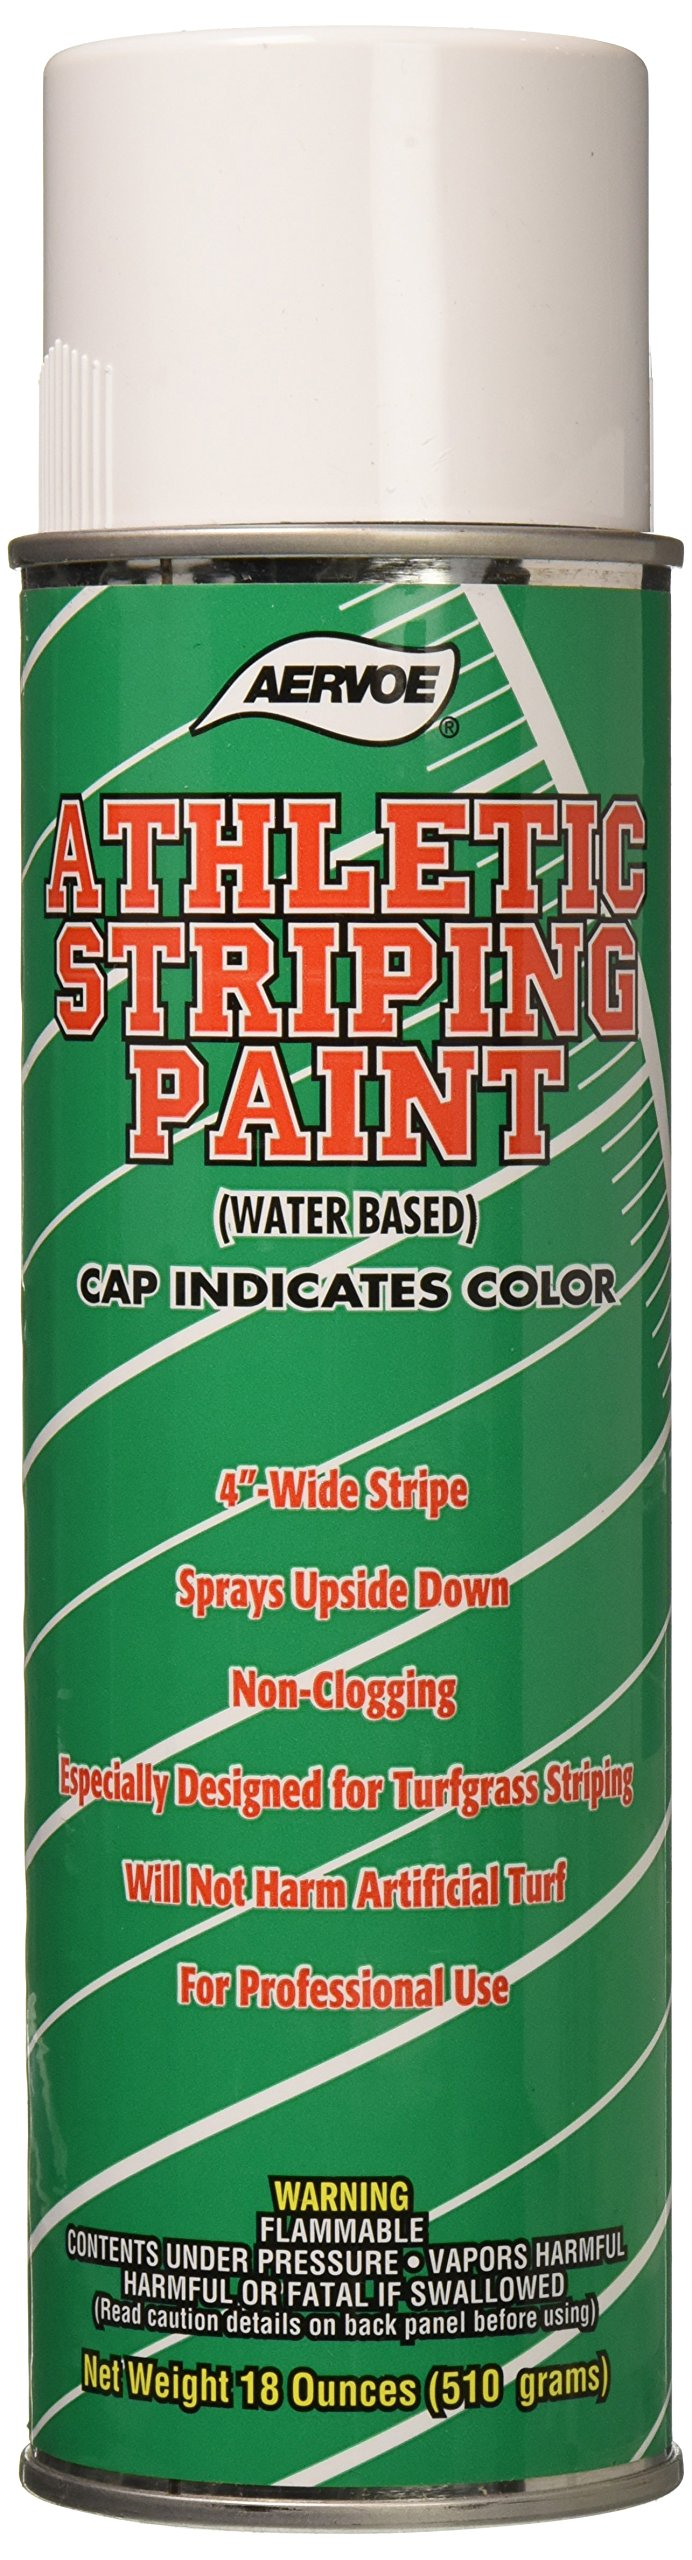 Tapco 2910-00020 Athletic Striping Paint Can, 18 oz Capacity, White, For Grass/Turf Marking (Case of 12)